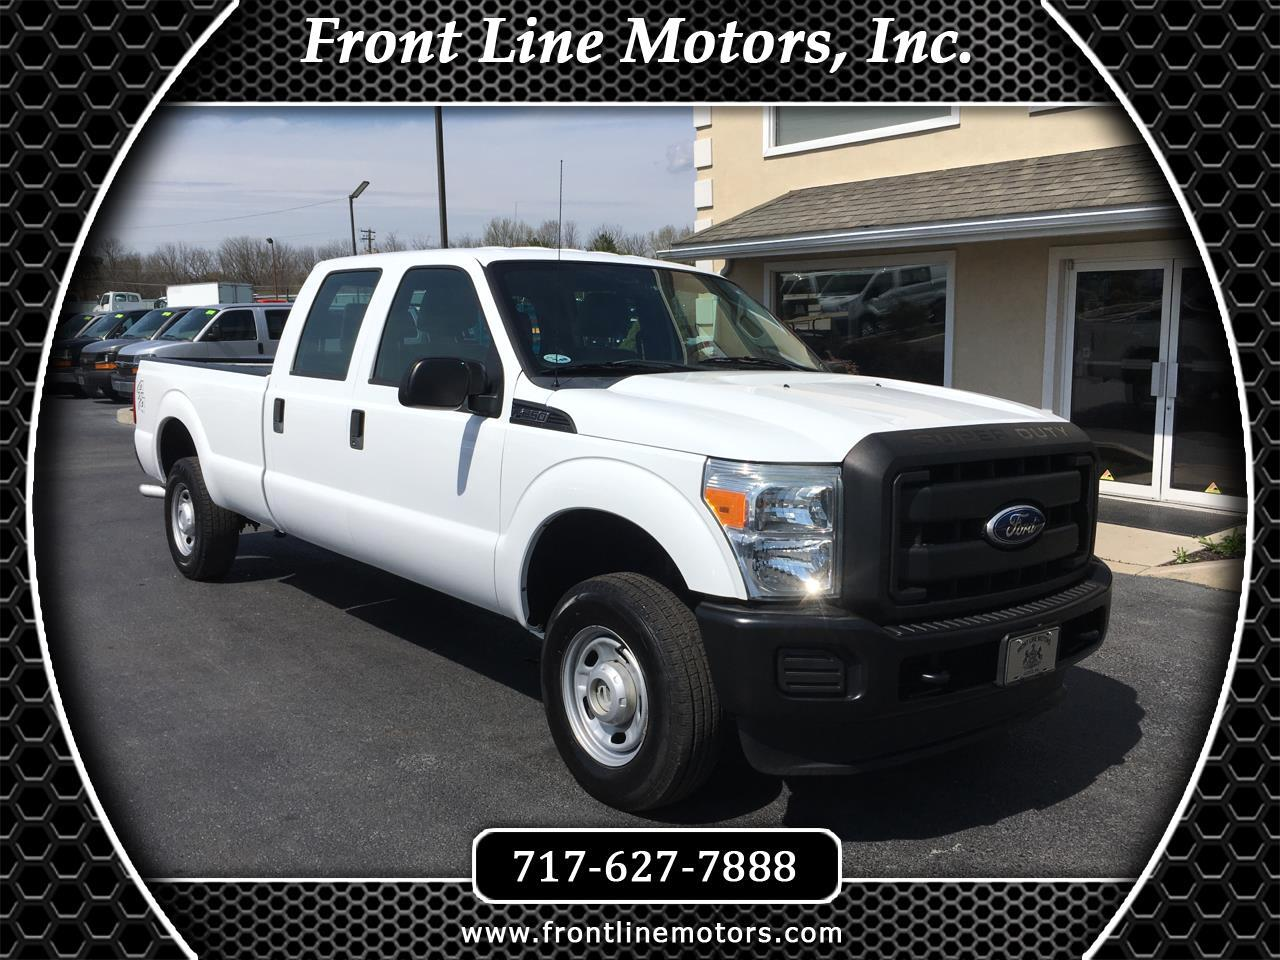 2011 Ford Super Duty F-250 SRW 4WD Crew Cab 172